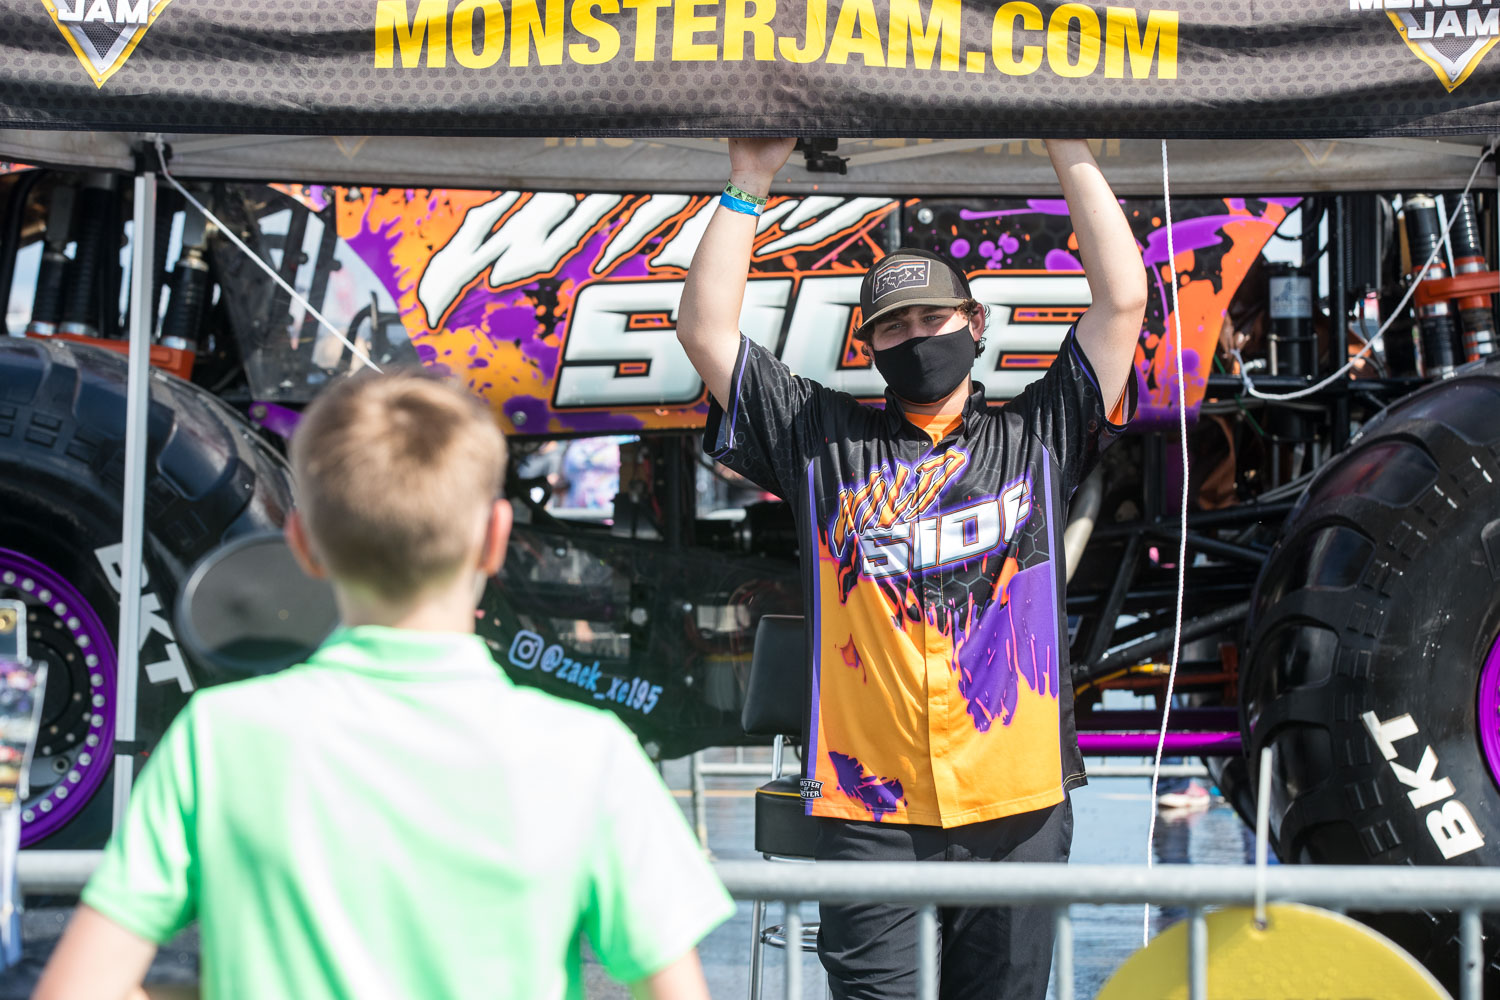 Zack Garner, driver of the Wild Side Wrecking Machine truck participates in a Q&A session with fans during the Monster Jam Pit Party prior to the main event at GEHA Field at Arrowhead on Saturday evening, June 26, 2021.